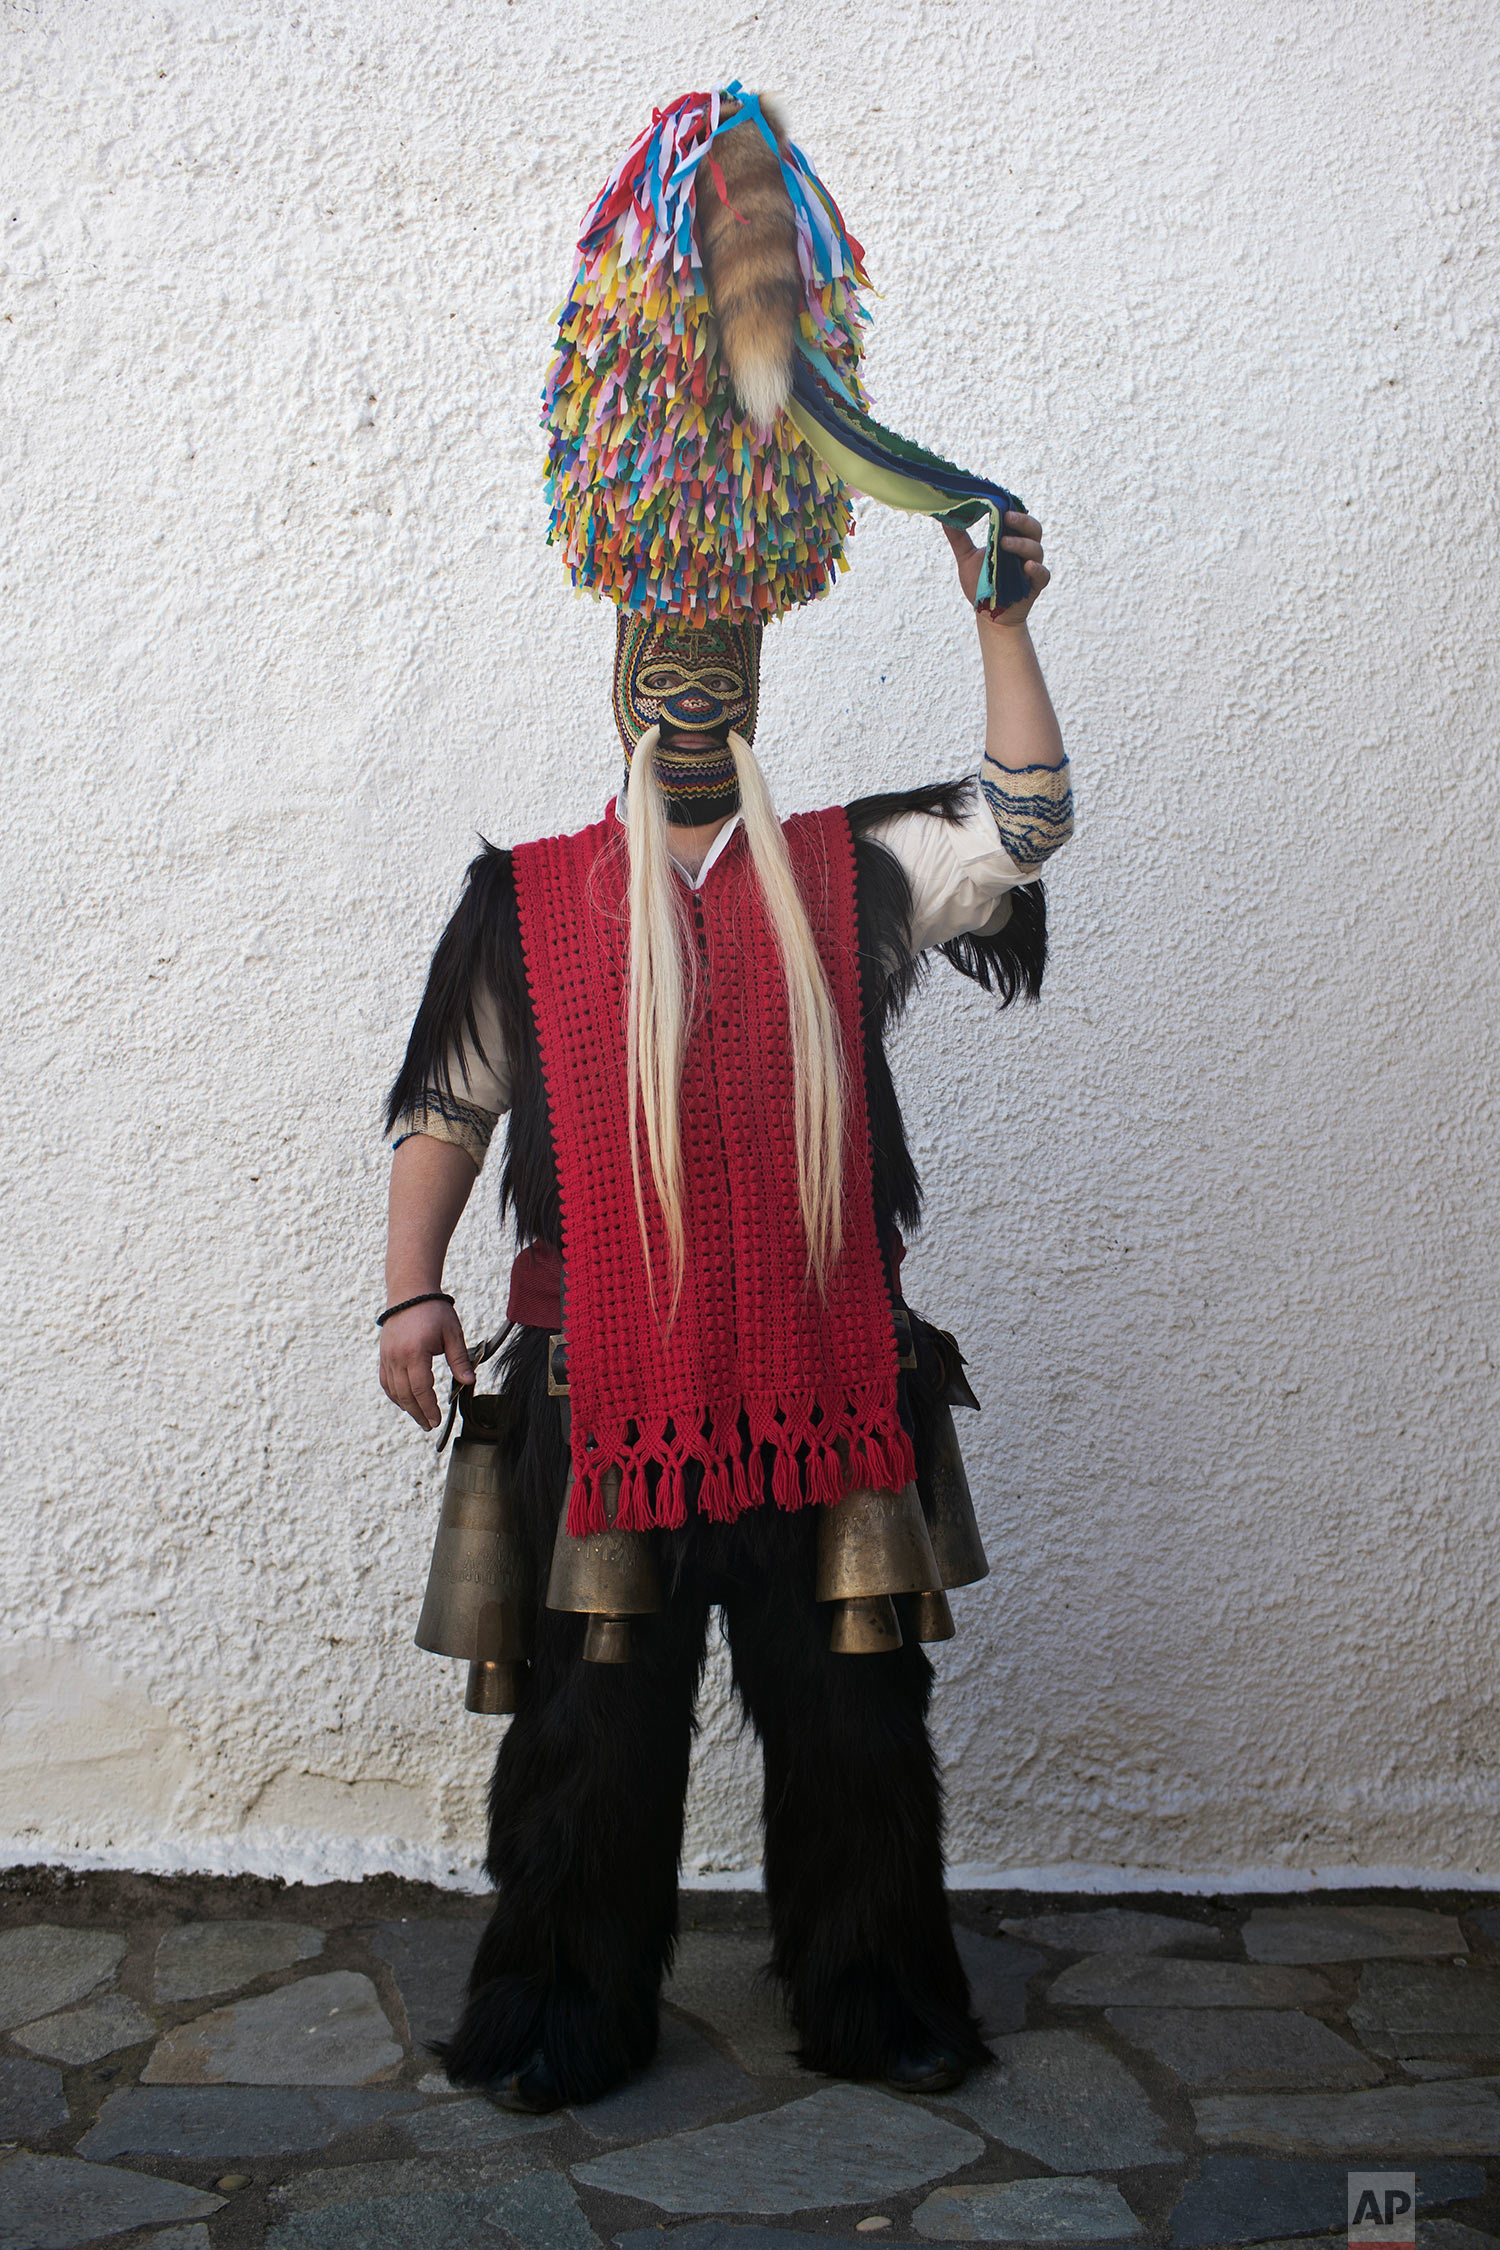 In this Monday March 11, 2019 a man wearing goat hide with bells around his waist and a mask that include a meter tall, ribbon-covered formation topped with a foxtail, also called bell wearer, poses for a picture in the village of Sohos, northern Greece, as he participates in a Clean Monday festival The procession is one of a great variety of customs across Greece. (AP Photo/Petros Giannakouris)